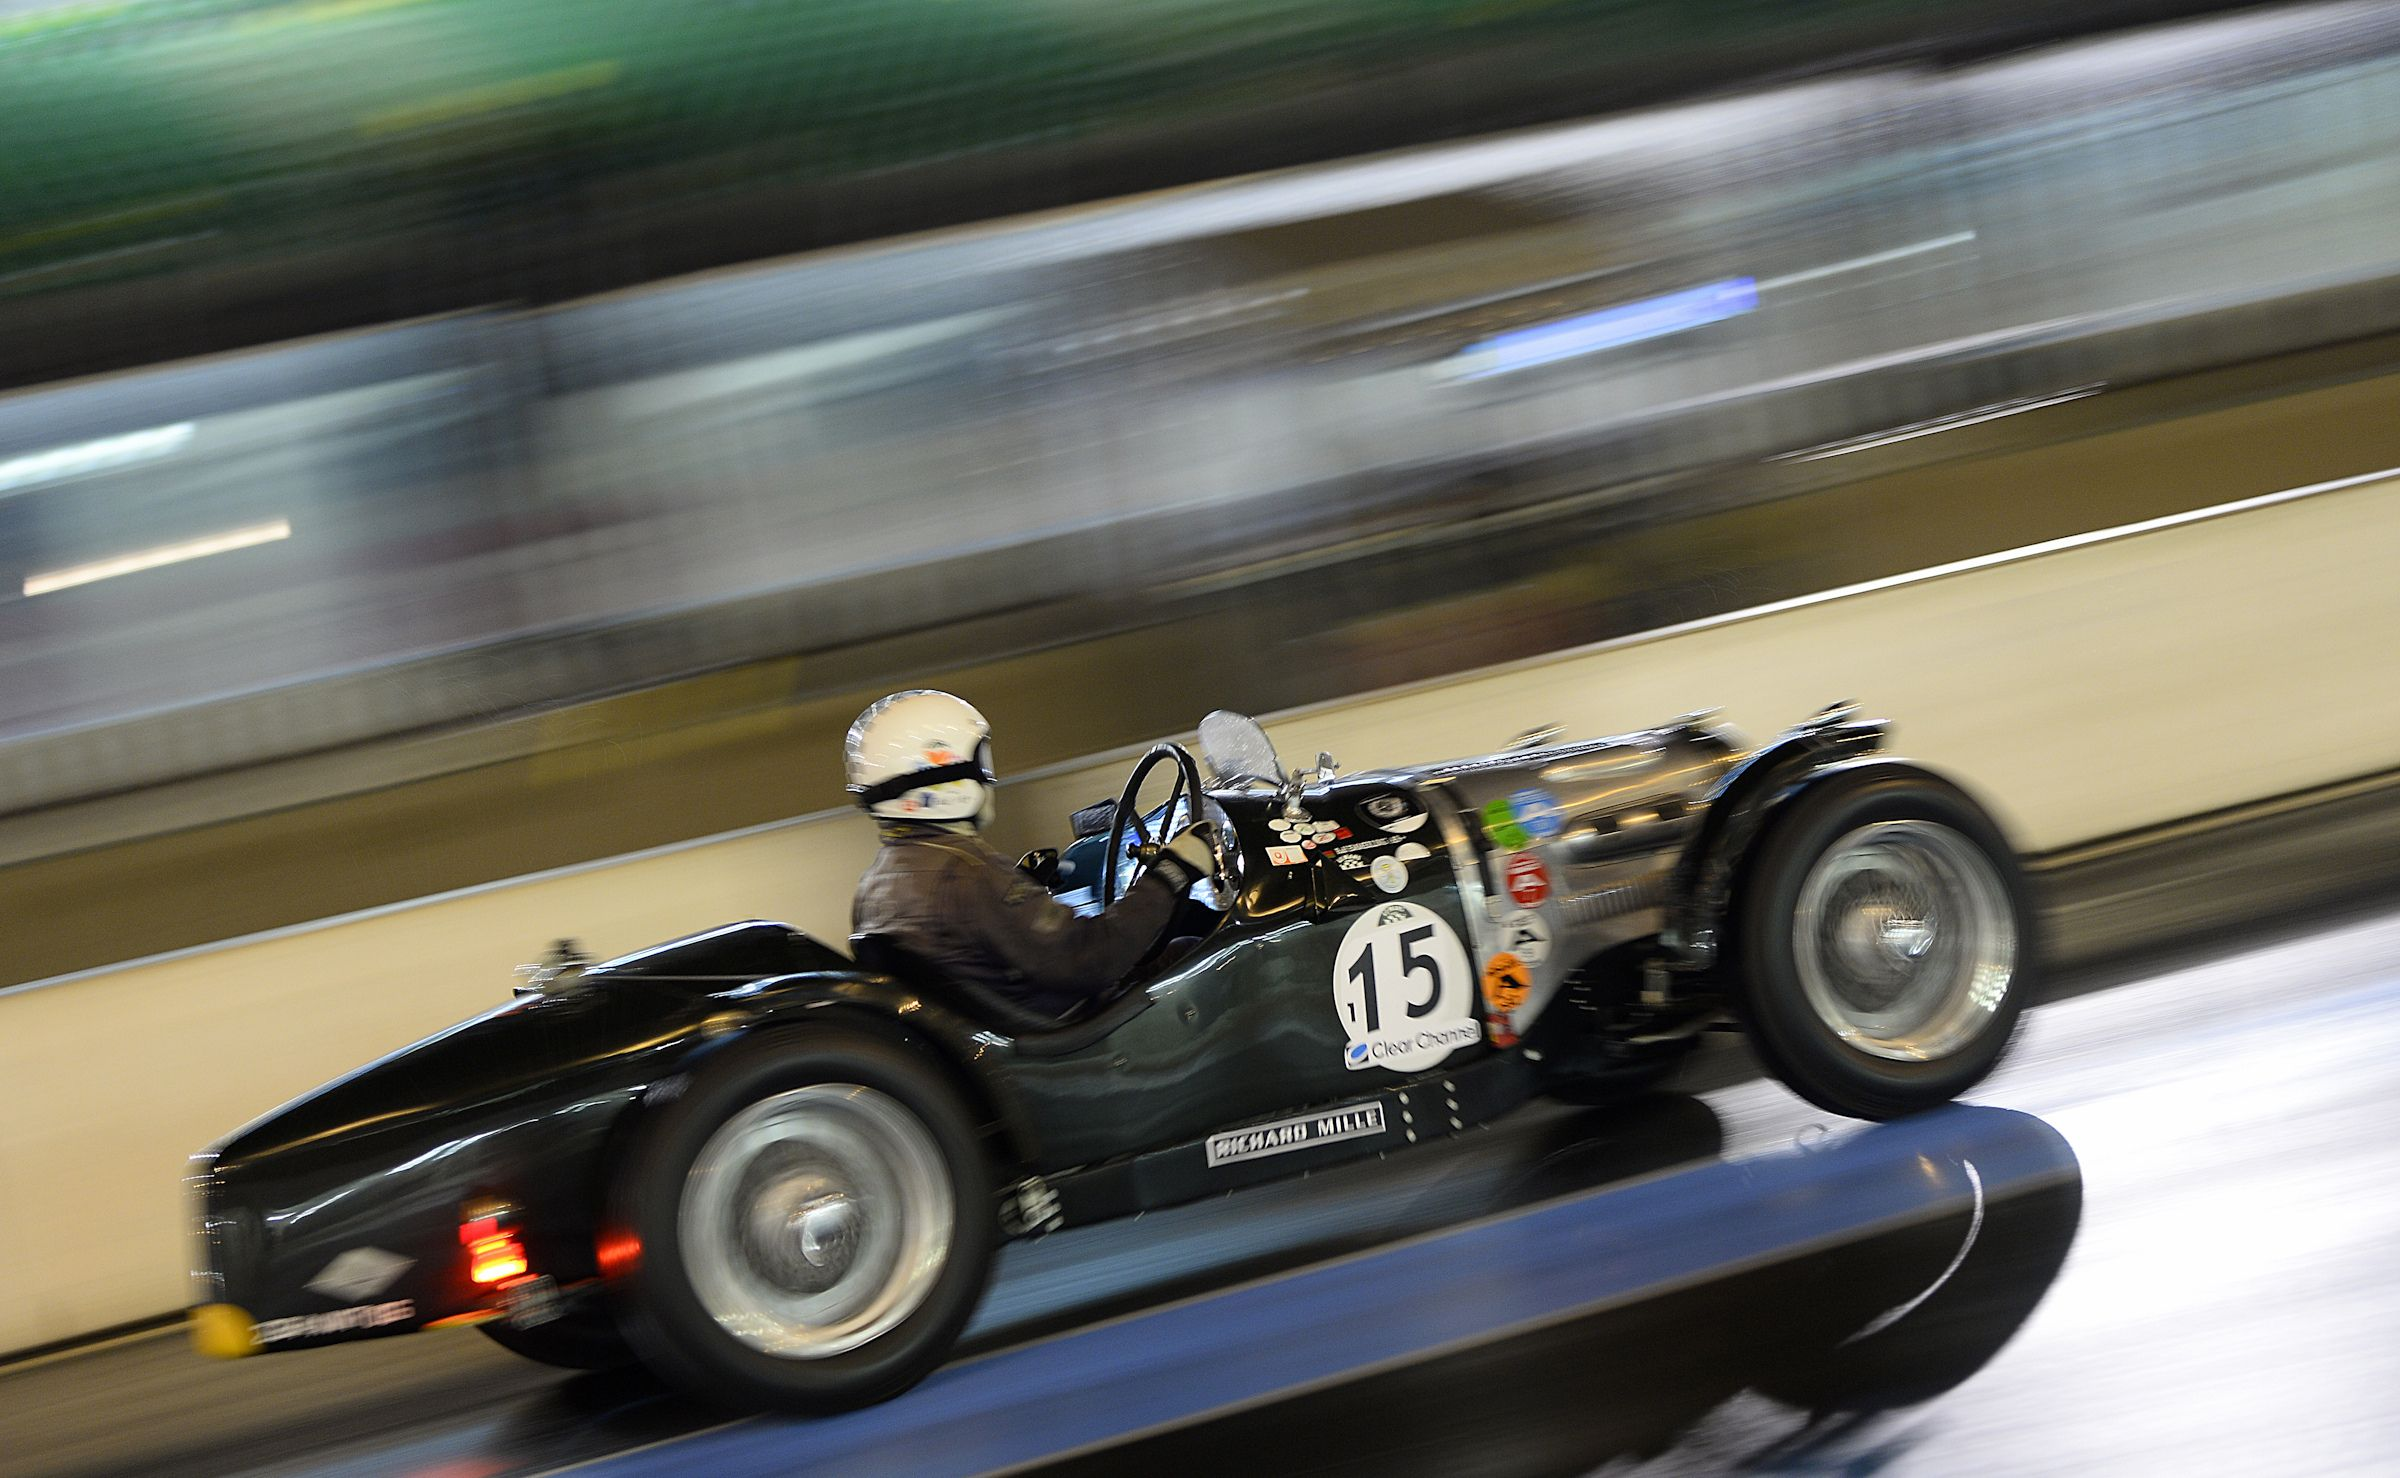 #ClassicCar #Racing Events In #2016 That No One Should Miss